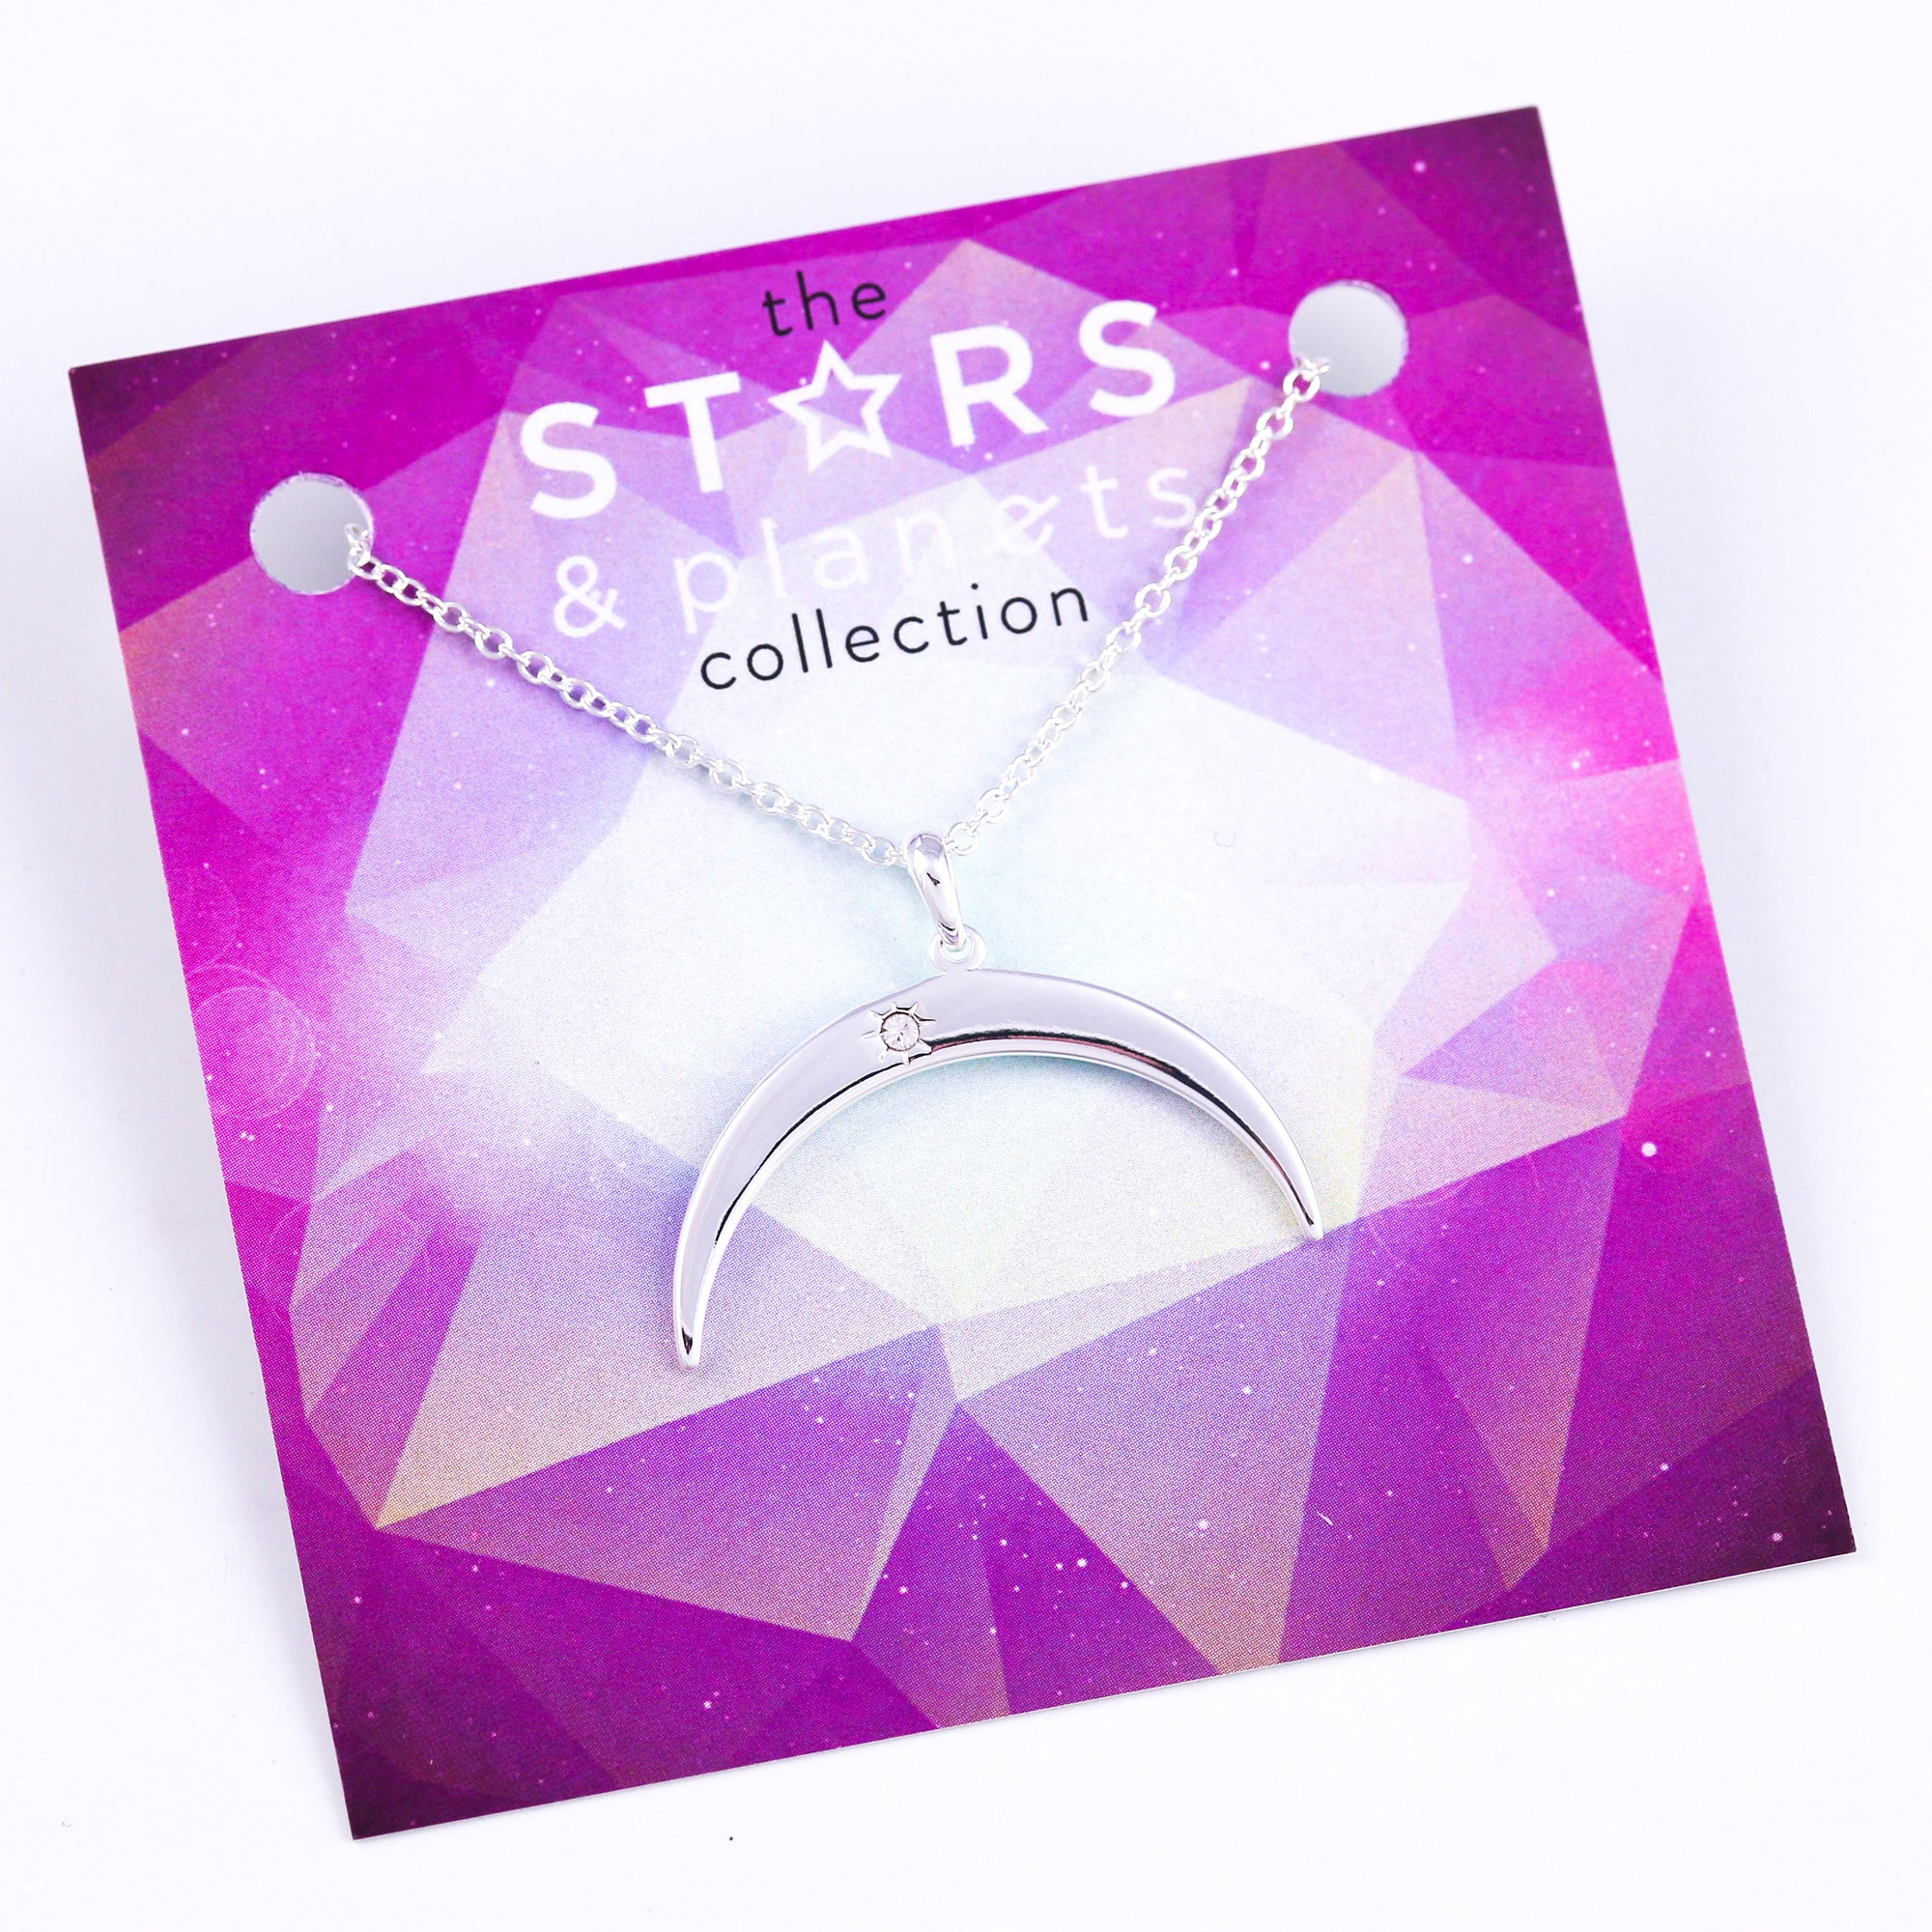 Silver Inverted Moon Necklace Stars & Planets Collection